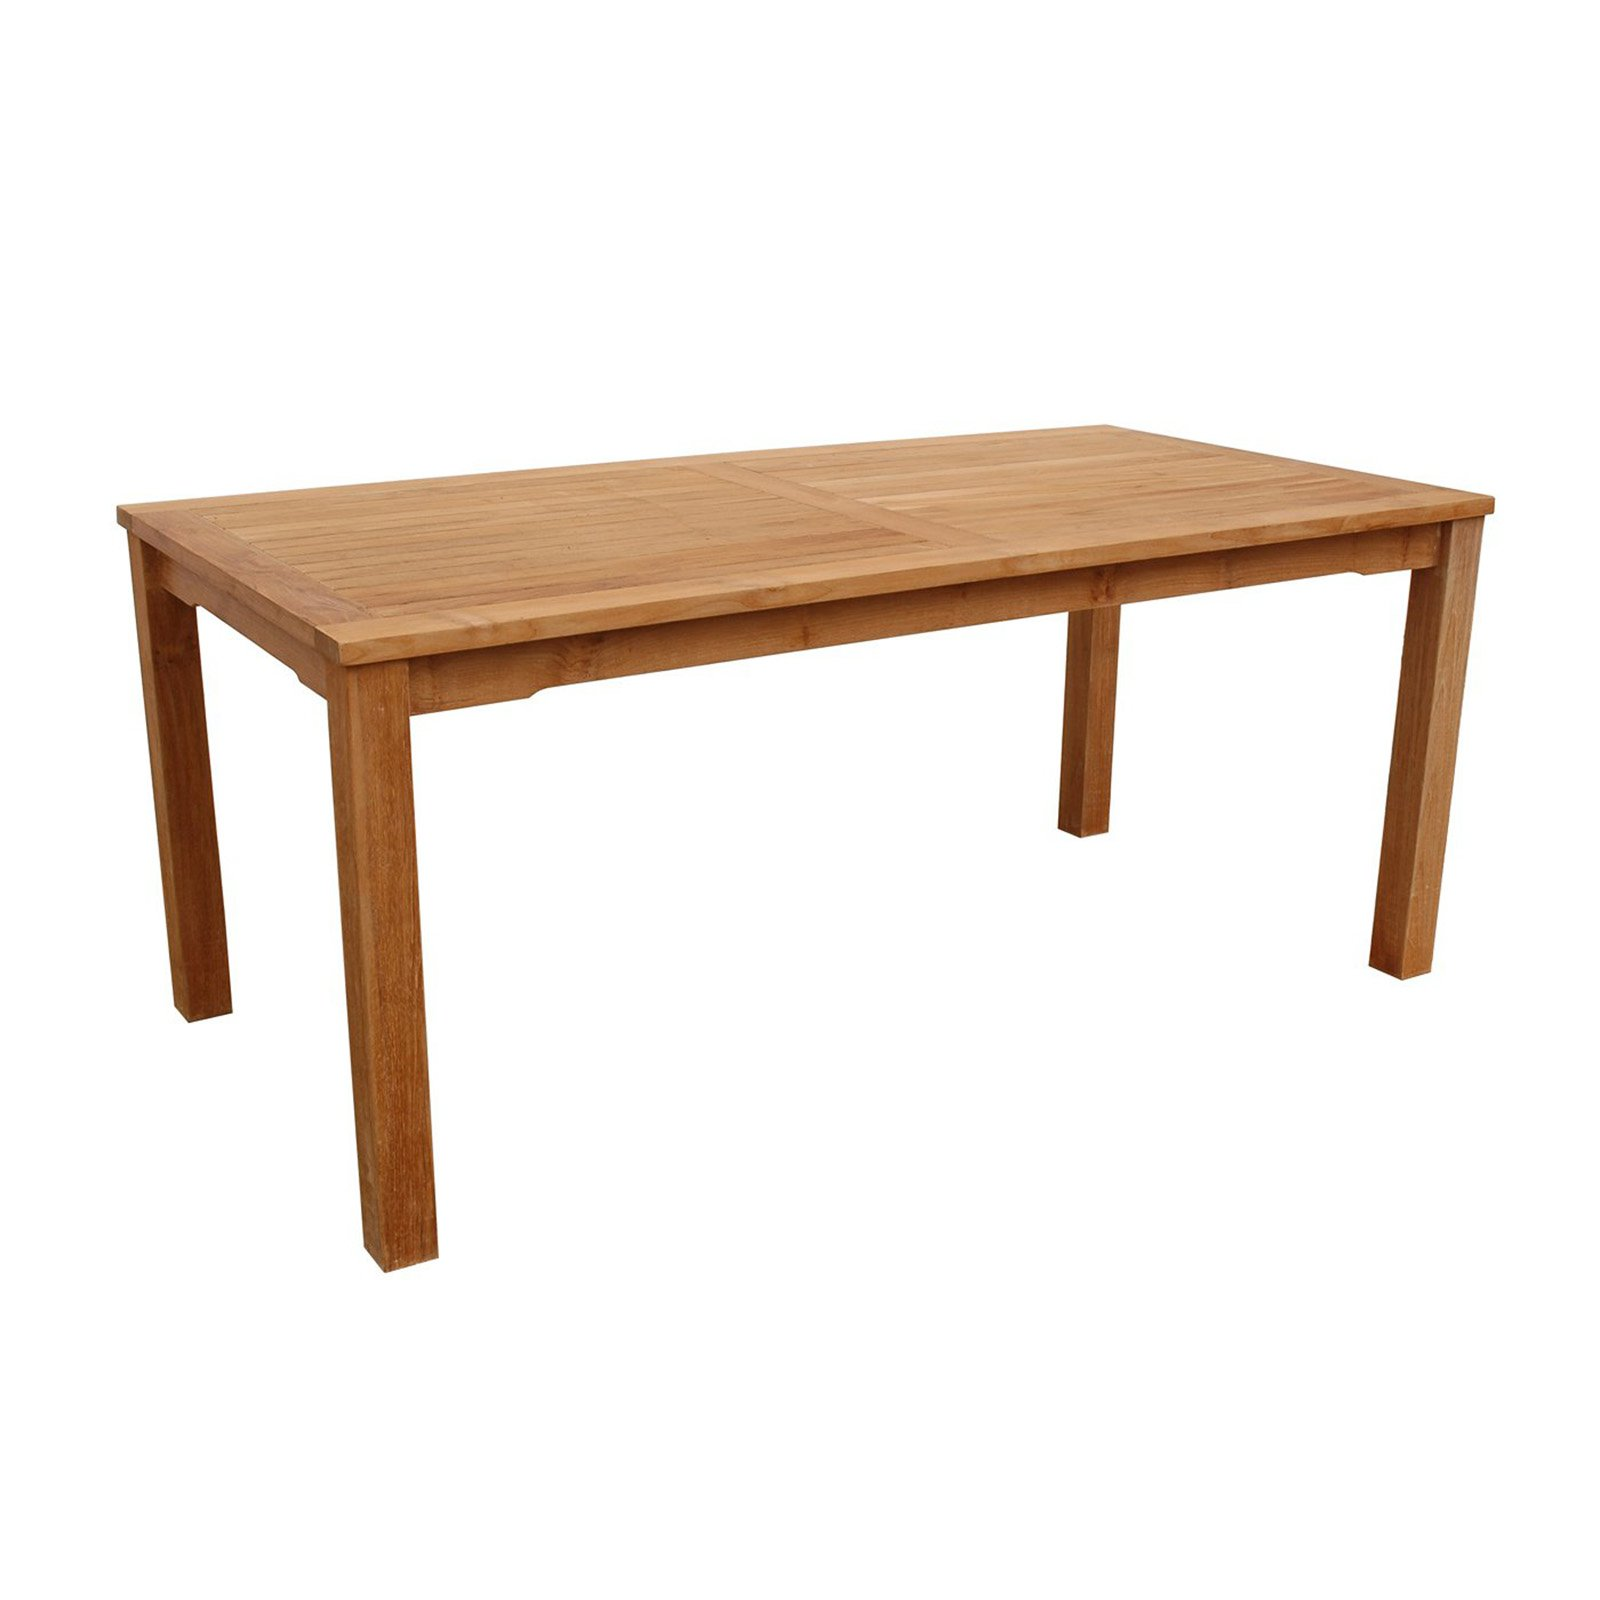 Anderson Teak Bahama Outdoor Dining Table by Anderson